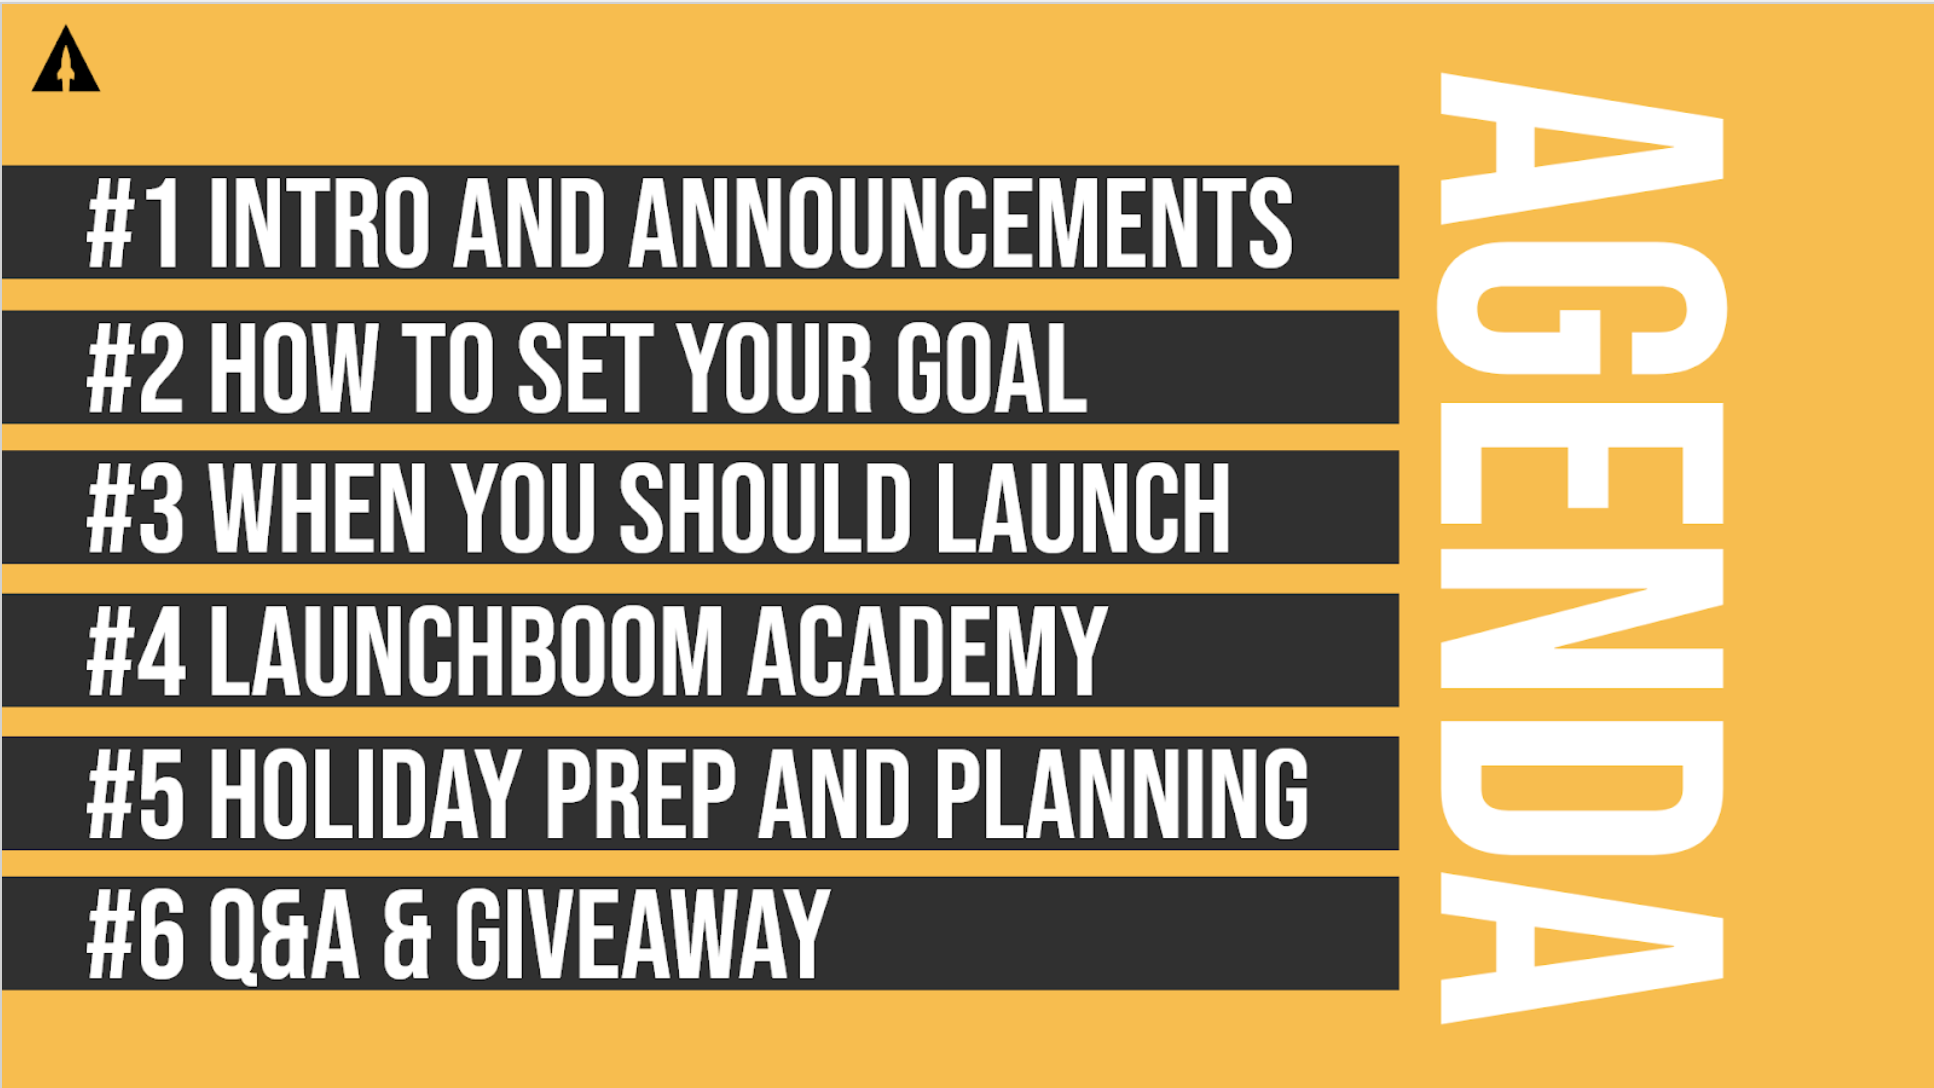 LaunchBoom Live Recap: How to set your goal, the best time to launch, and holiday crowdfunding guidance